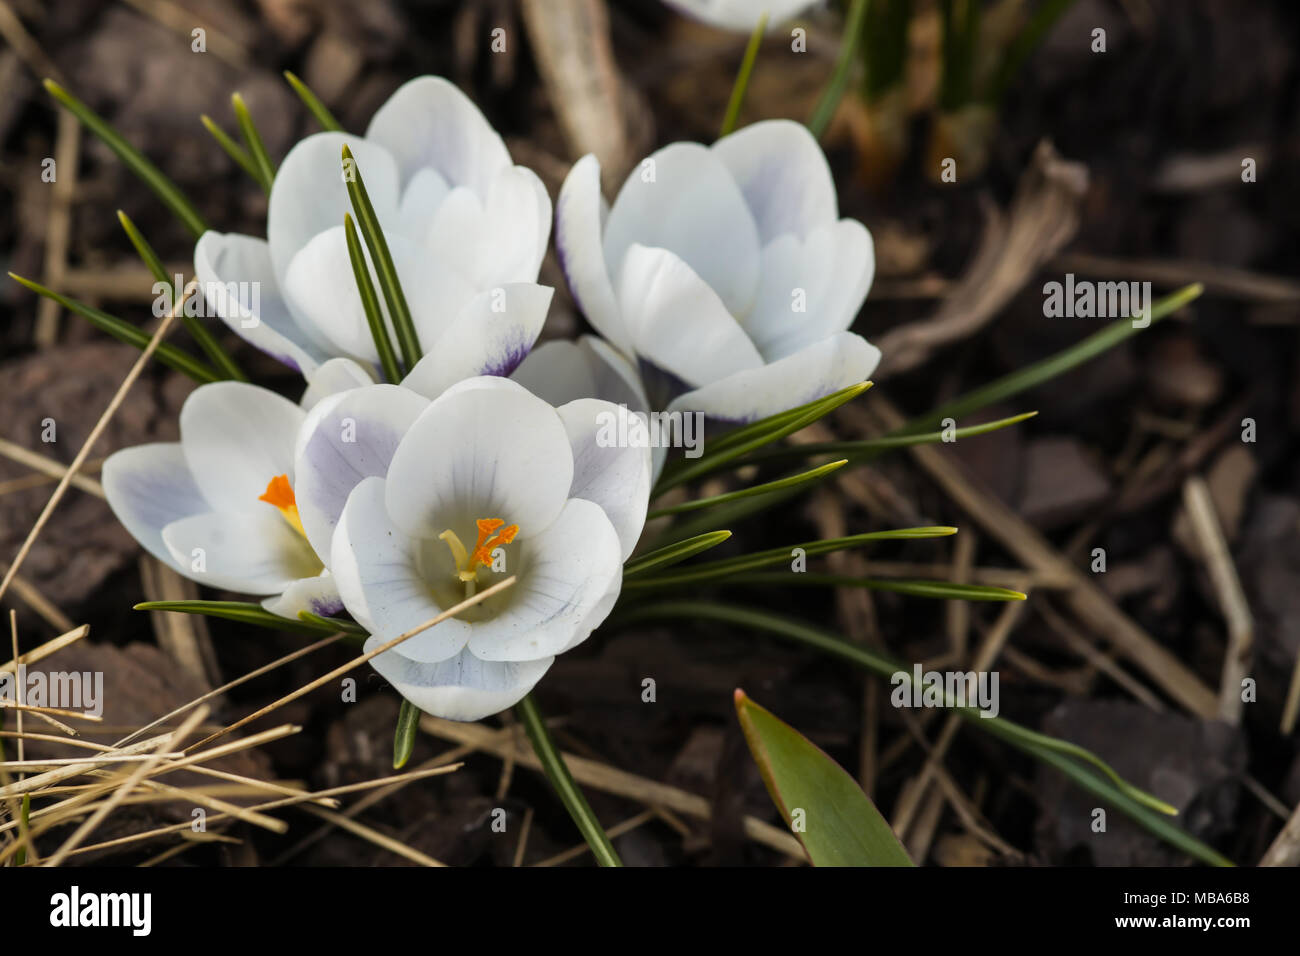 Blooming White Crocus Flower In The Bud Stock Photo 179089436 Alamy